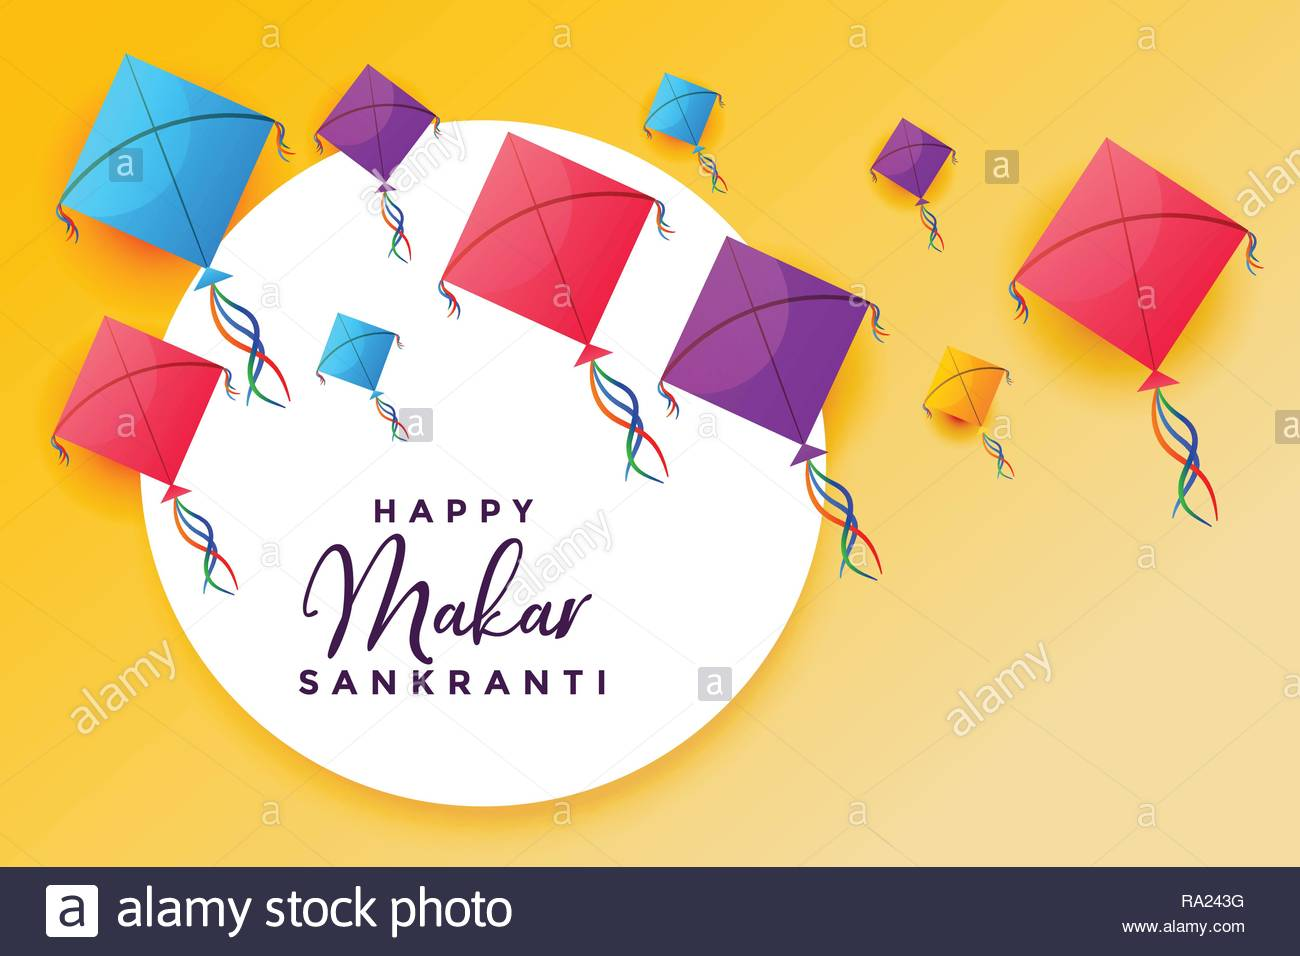 happy makar sankranti with flying kites festival background Stock 1300x956